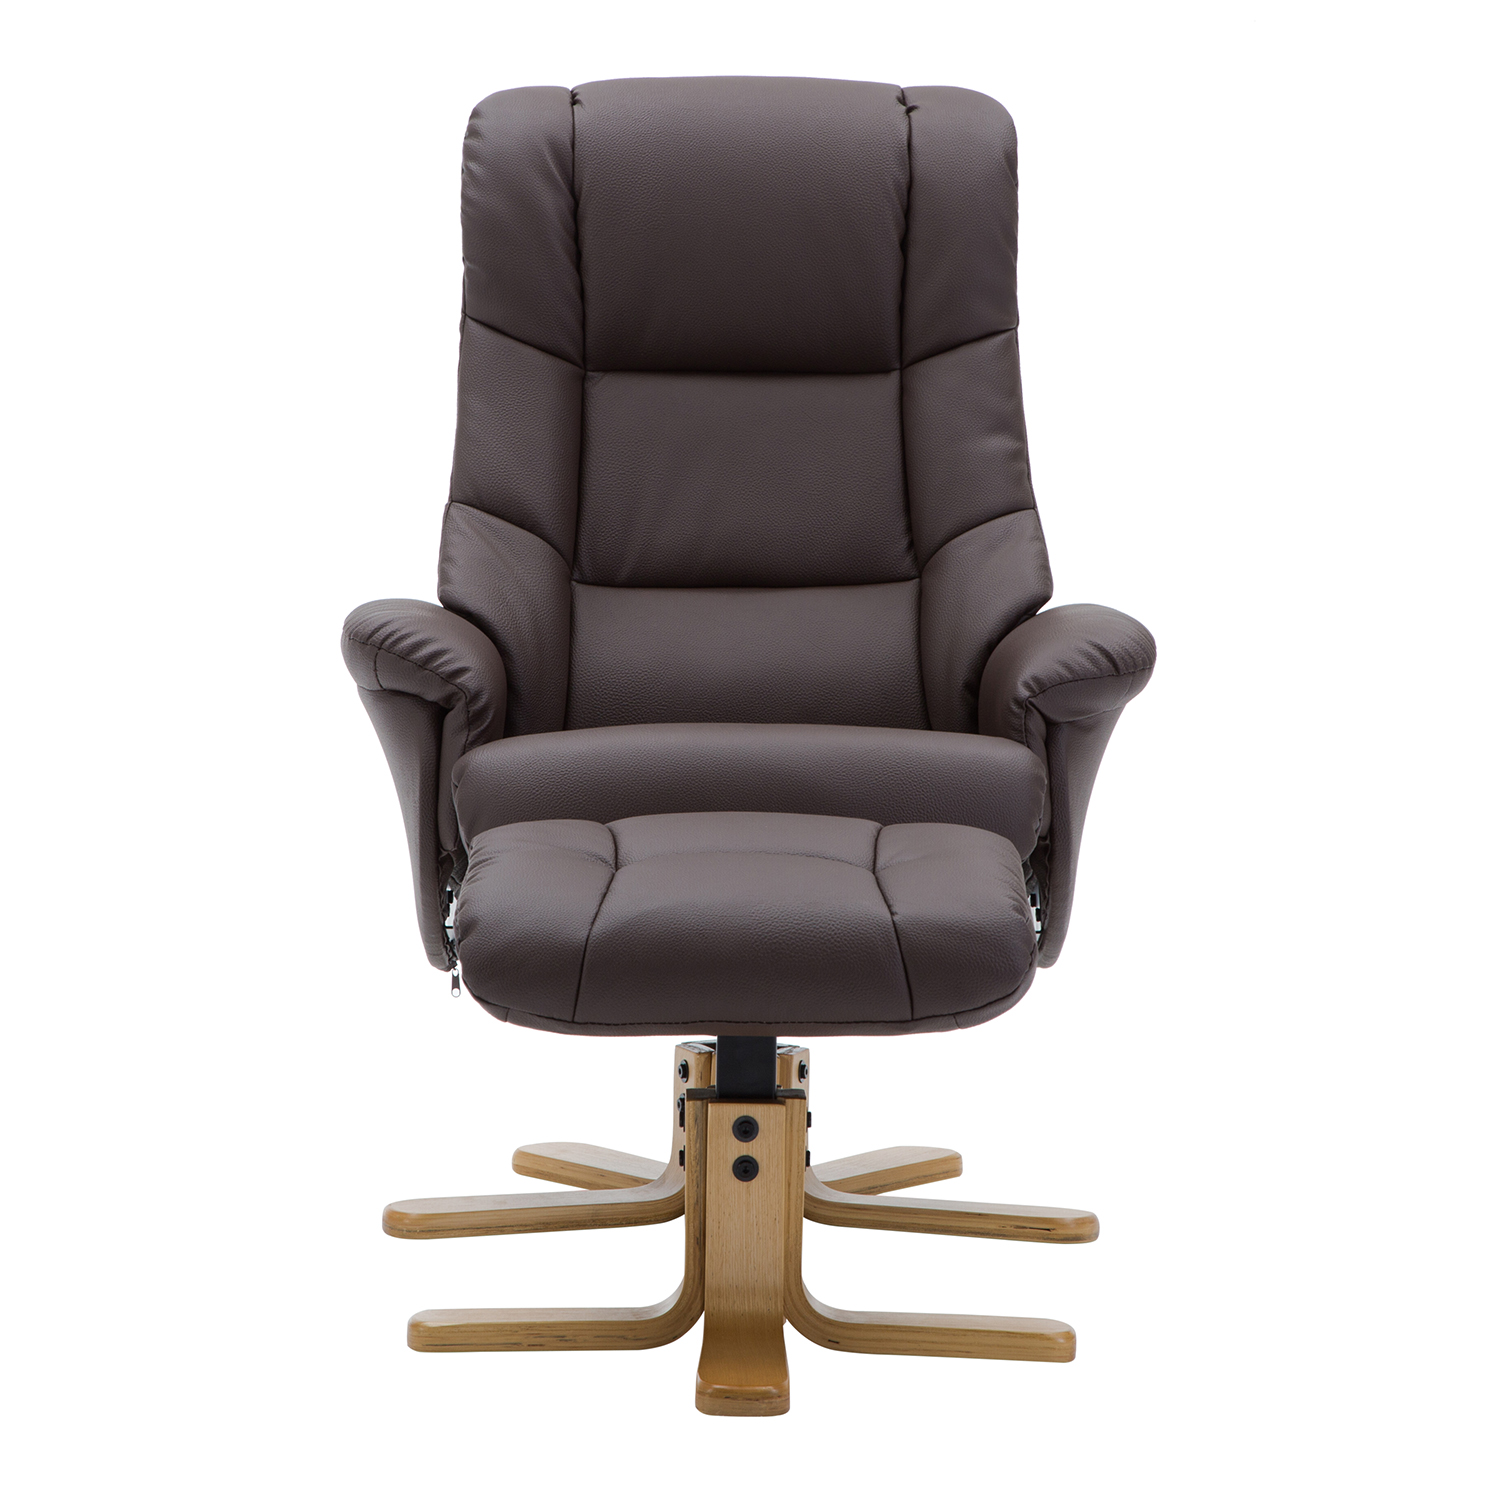 Bailey Swivel Chair & Stool - Faux Leather Brown